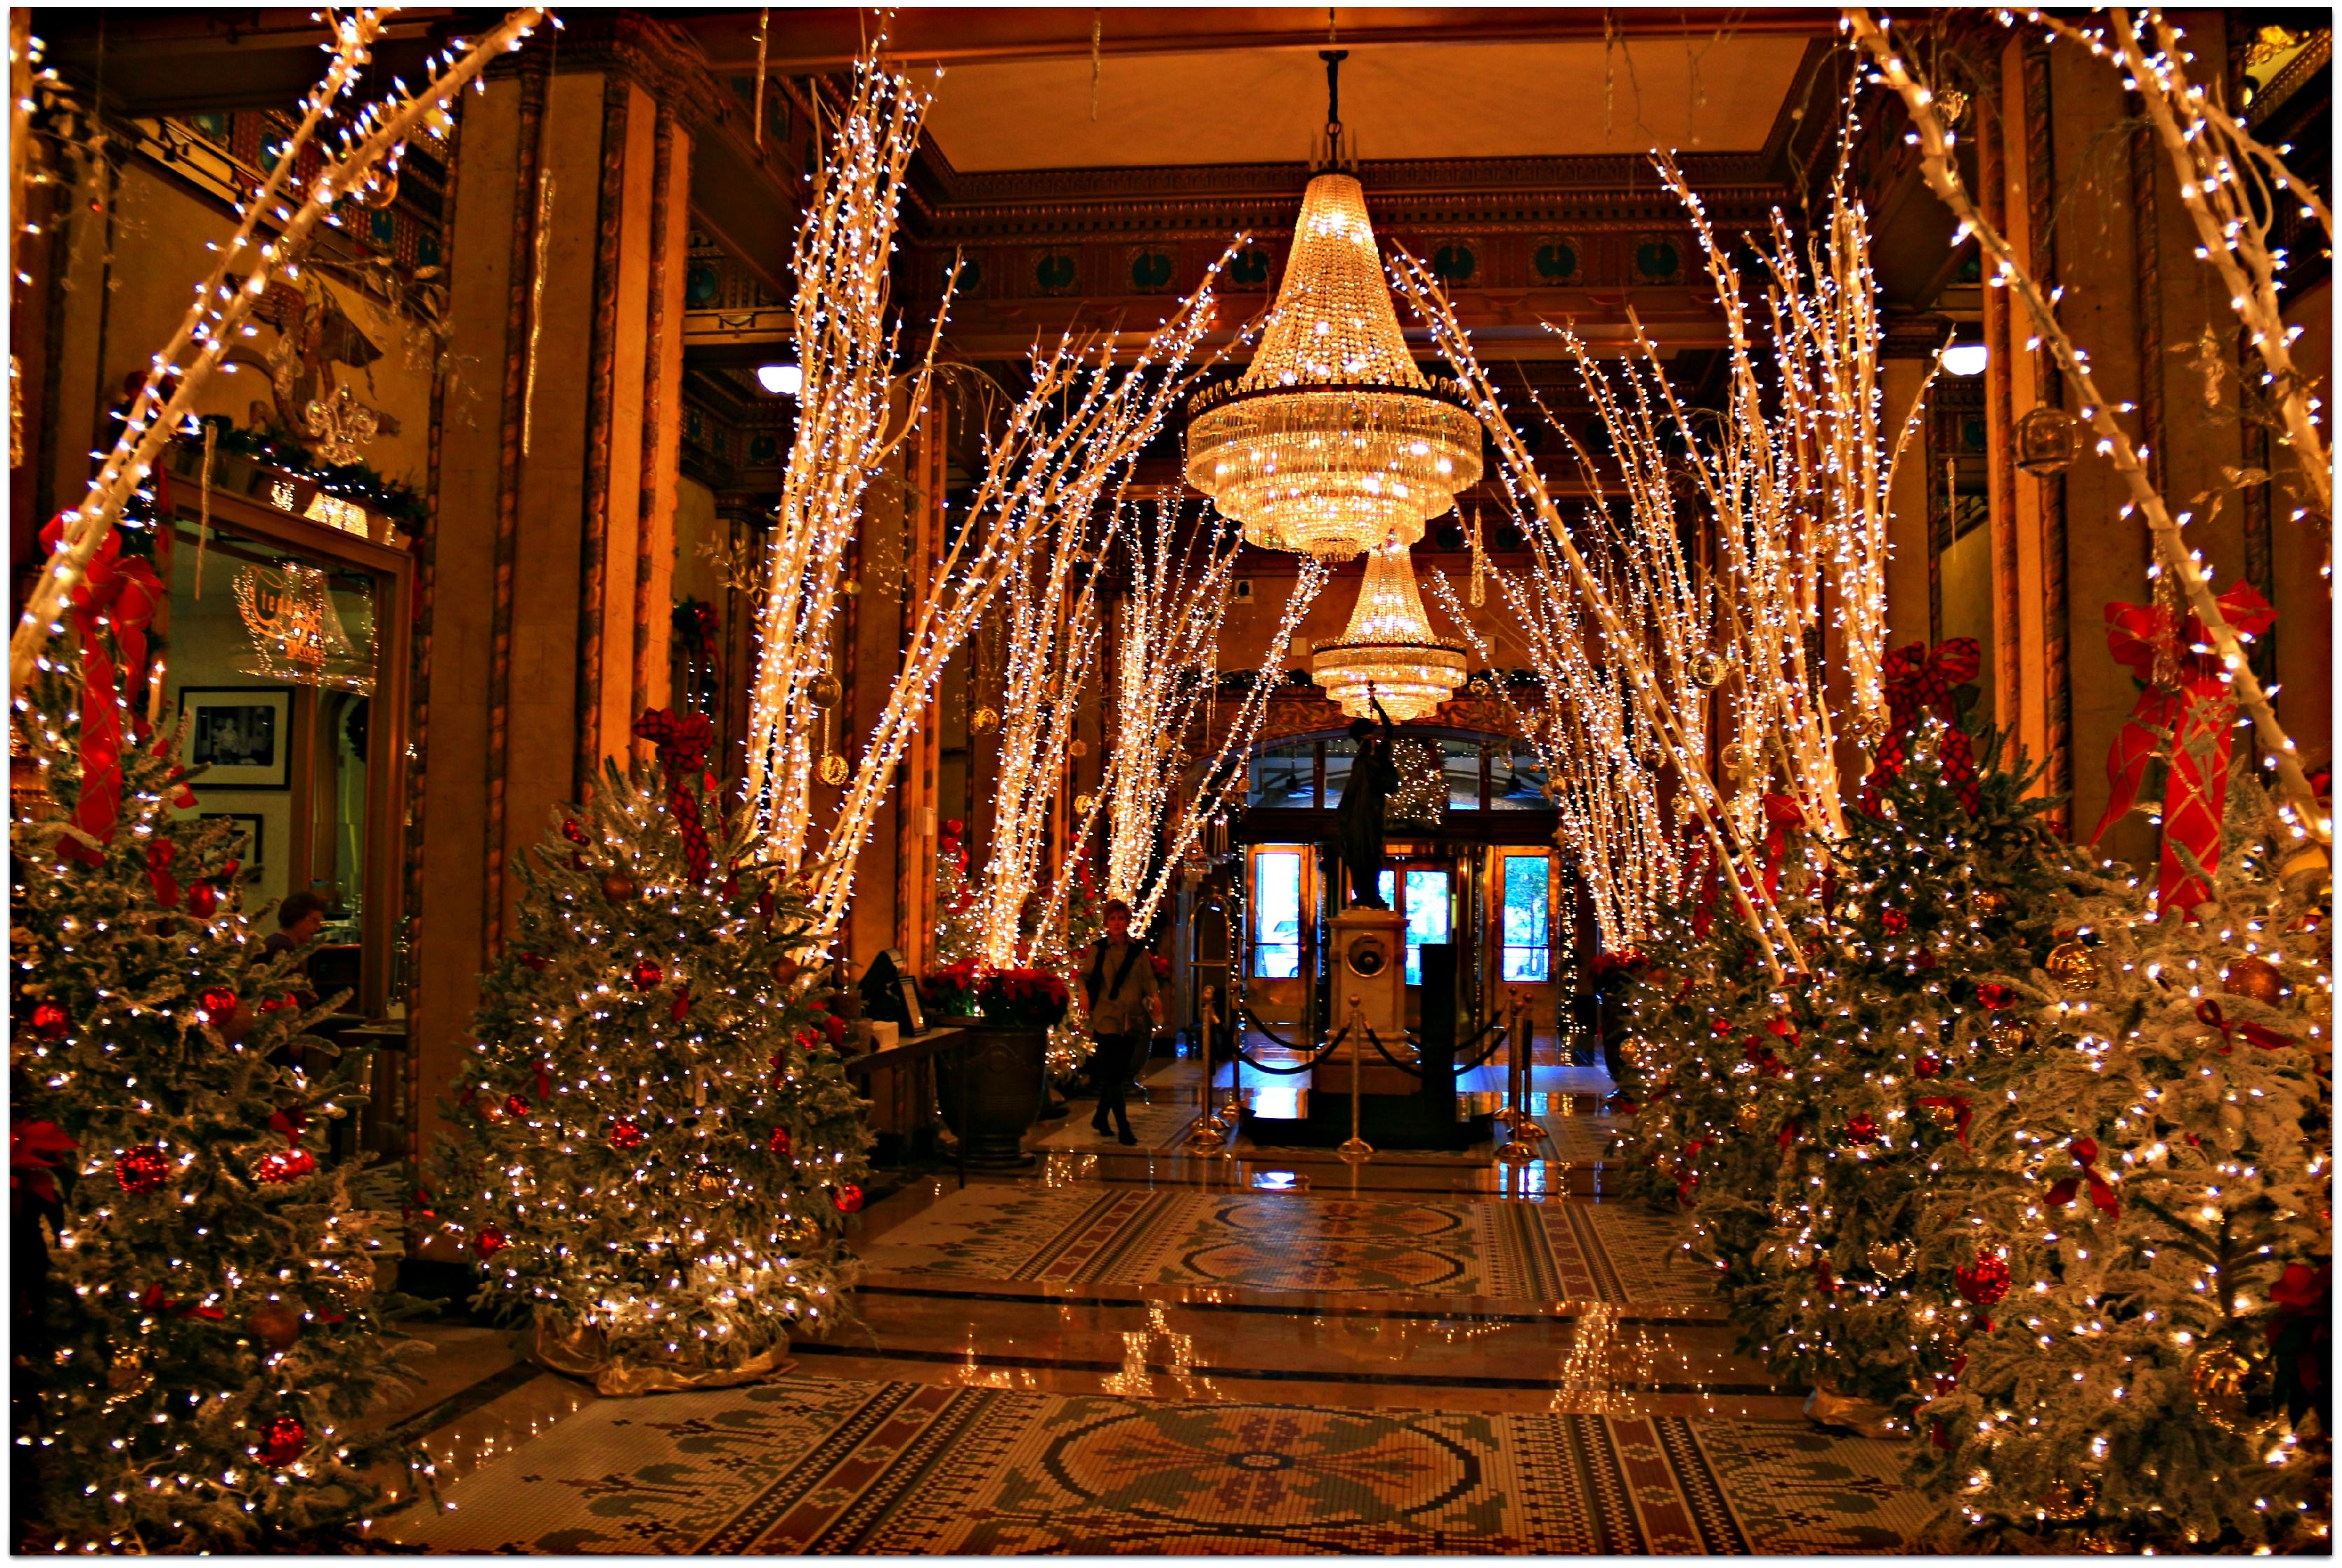 Roosevelt Hotel In New Orleans Best Hotel We Have Ever Stayed In  - New Orleans Christmas Lights